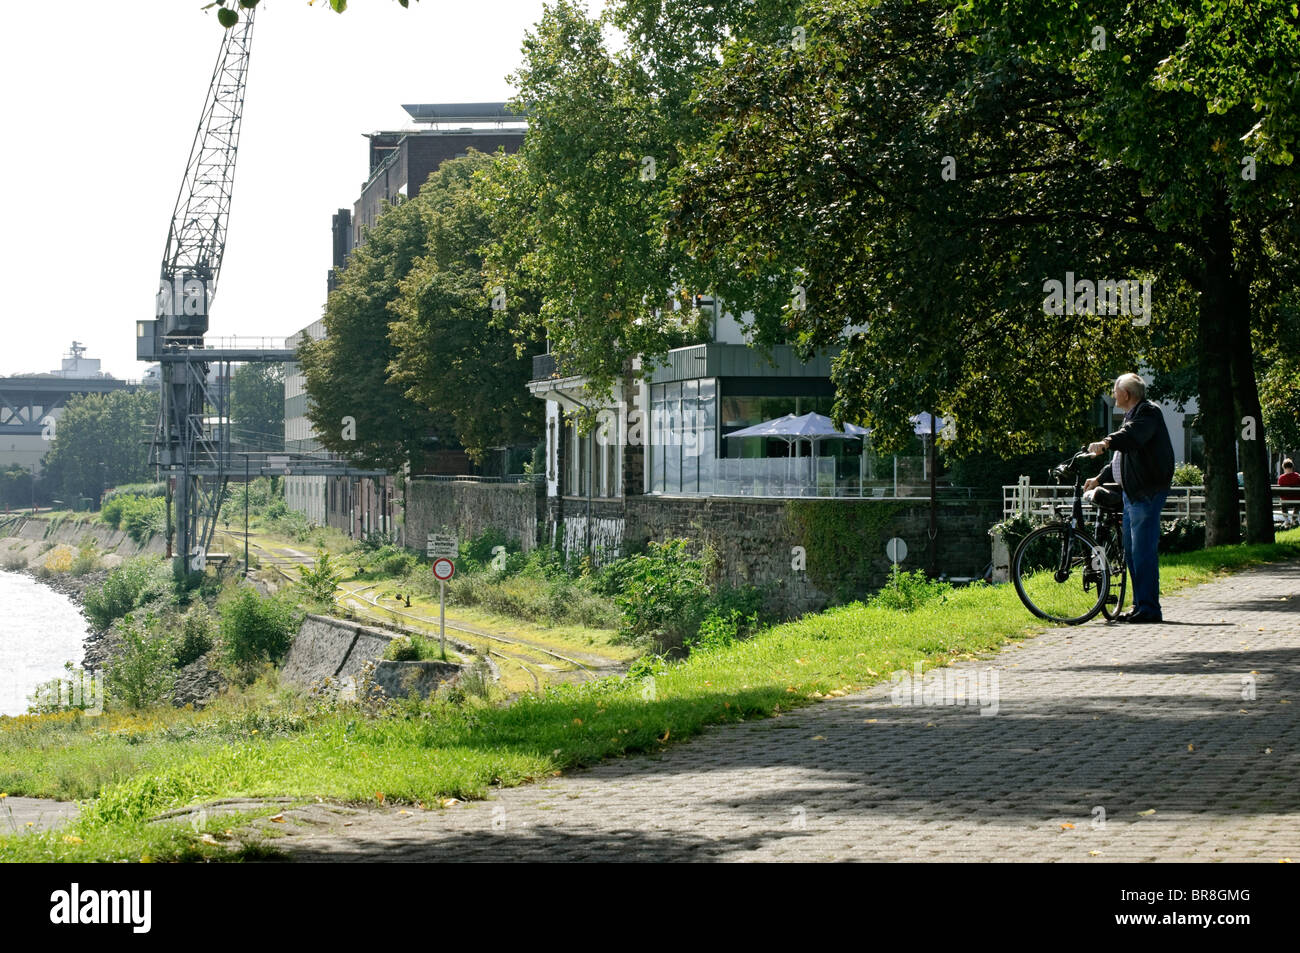 Man with bicycle & overgrown quay at Krefeld Uerdingen, NRW, Germany. Stock Photo